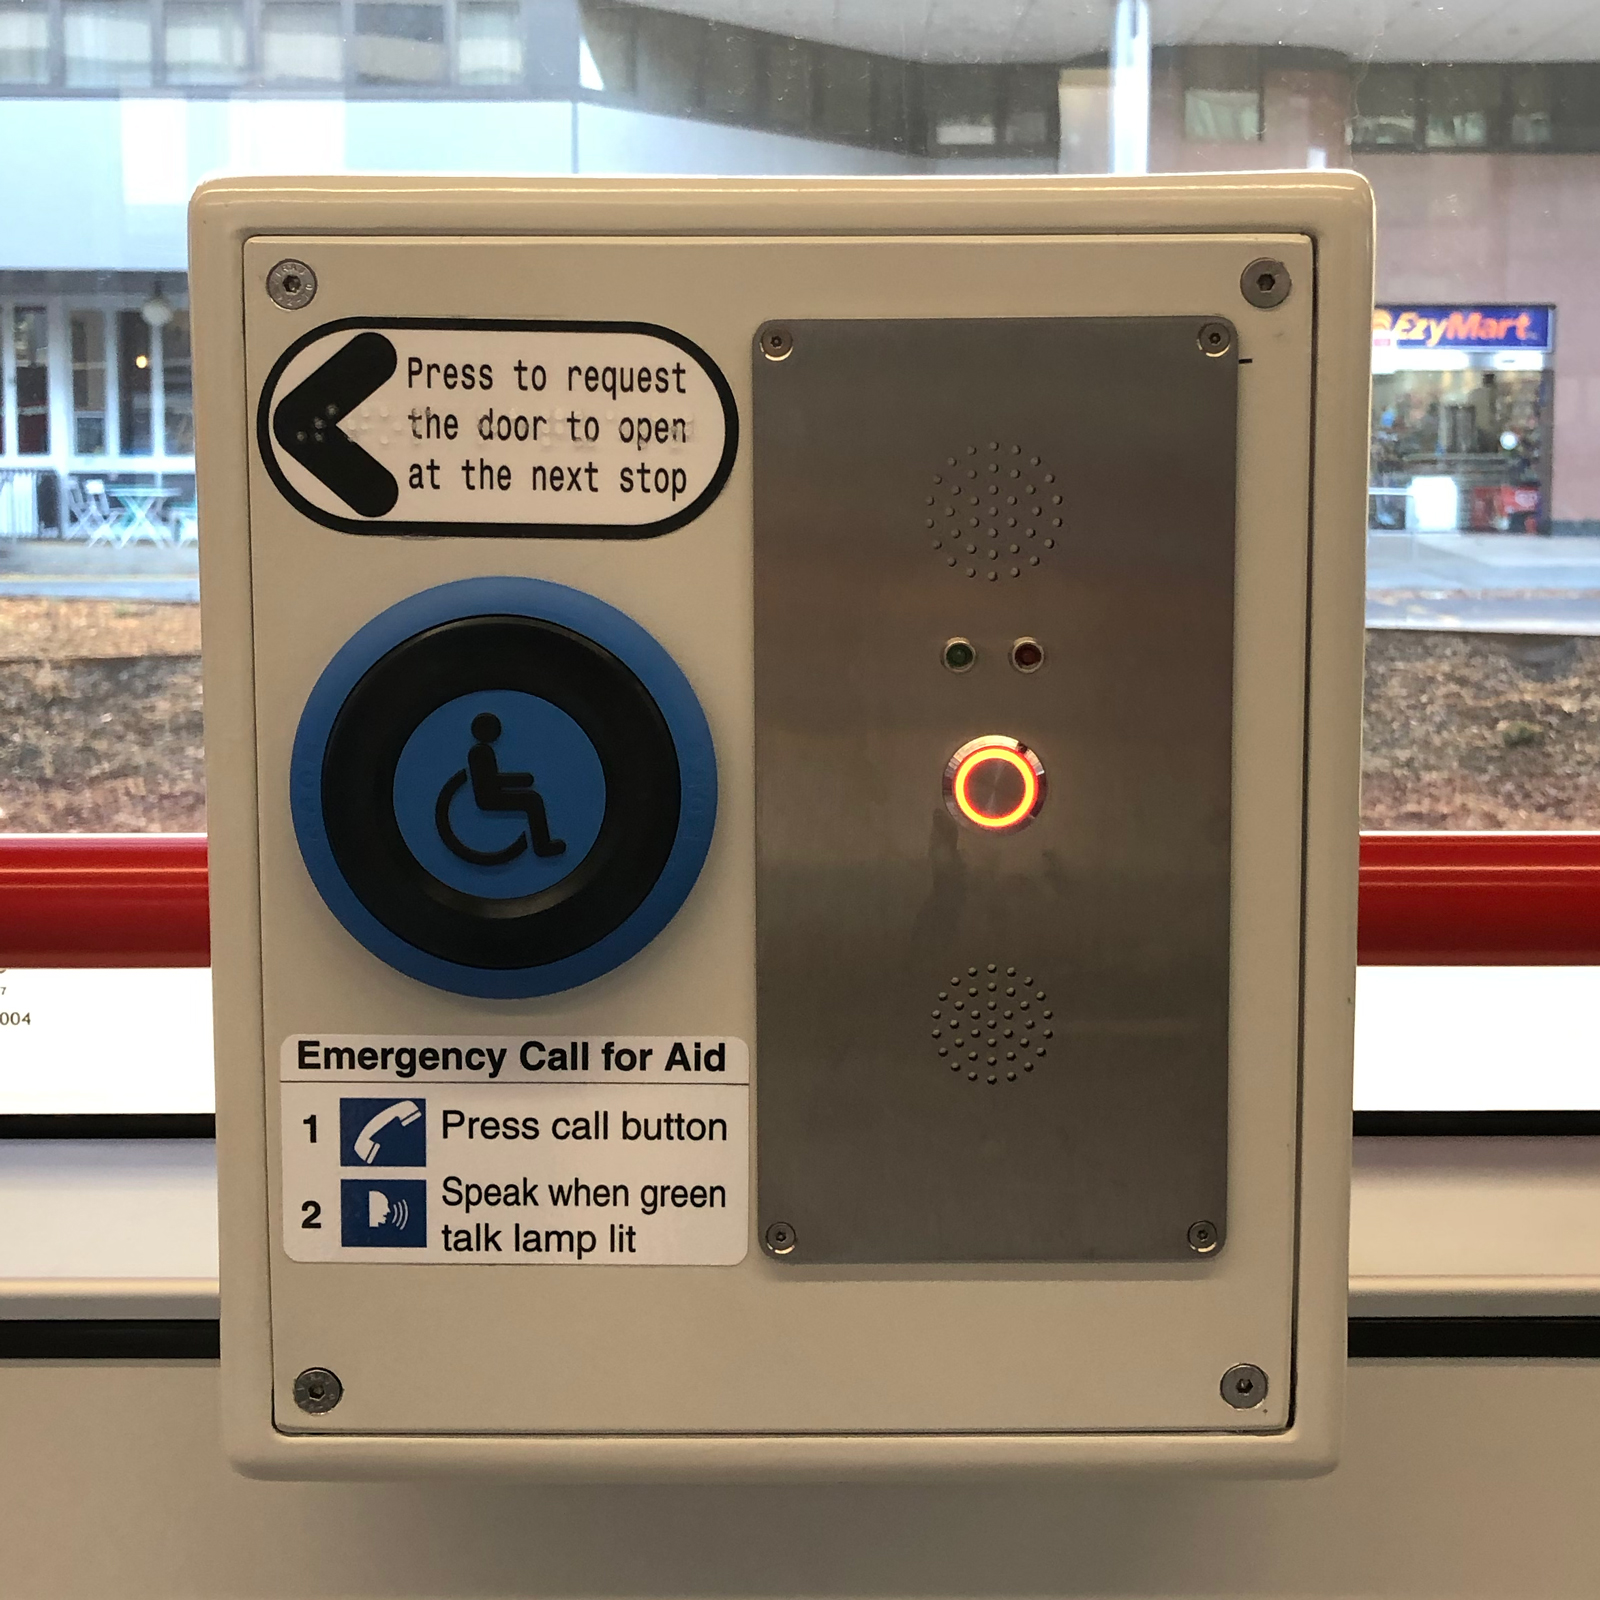 Canberra Light Rail Tram help button with written text and braille